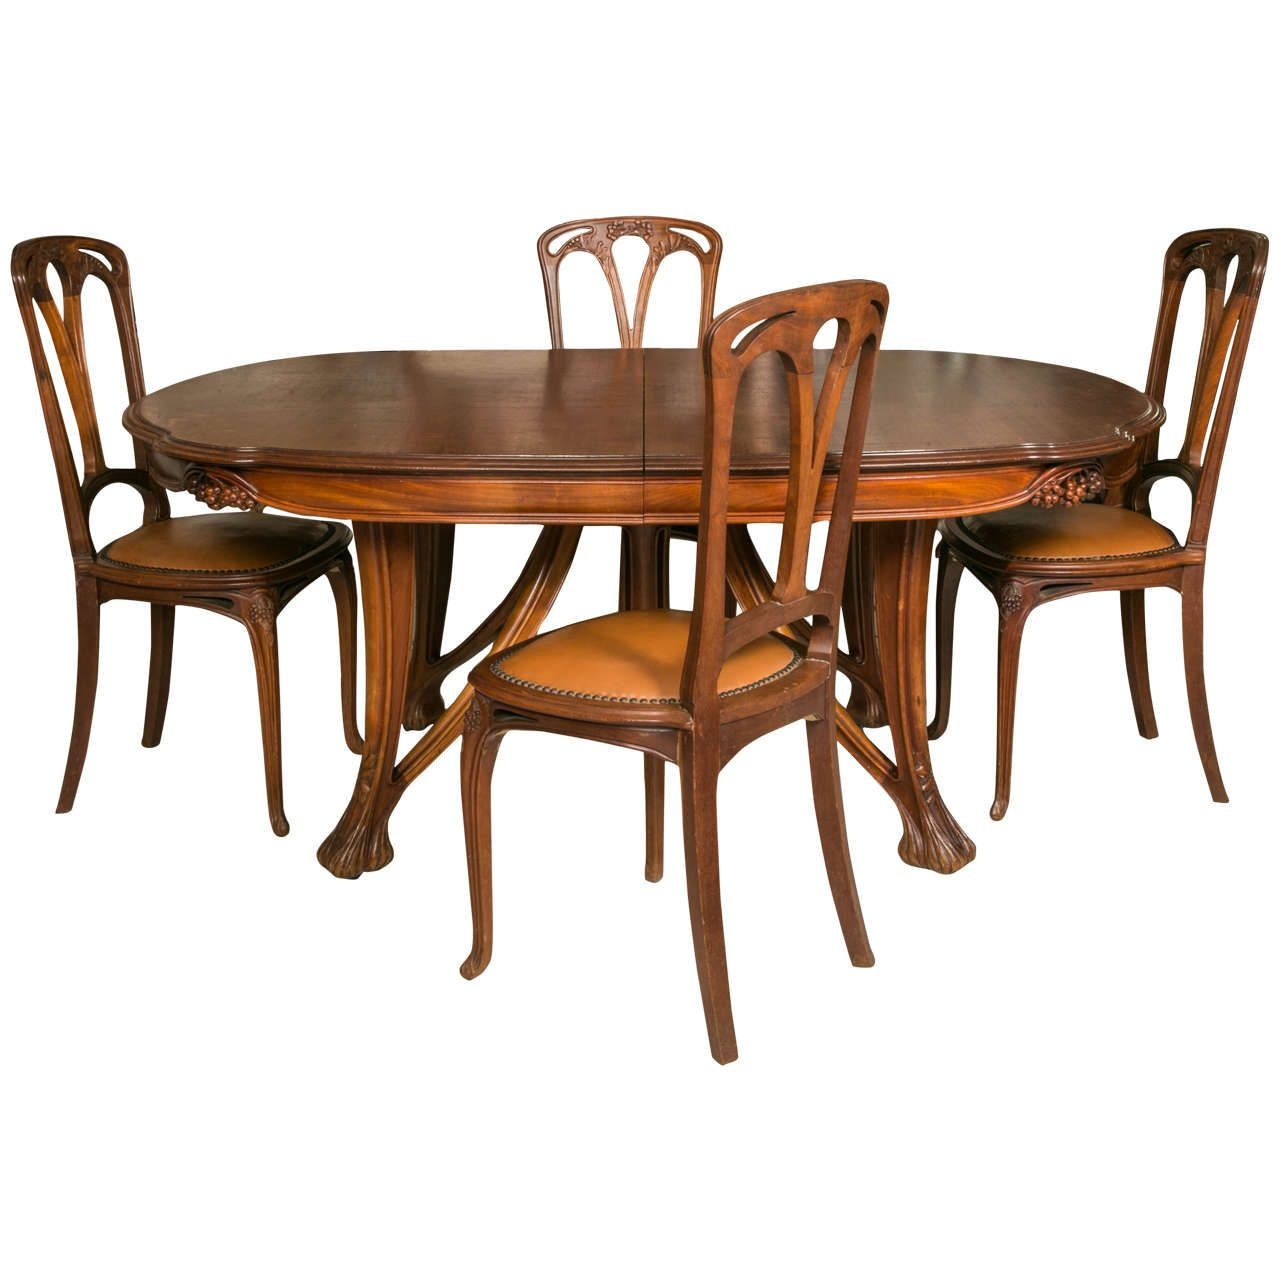 Art Nouveau Mahogany Dining Table and 12 Chairs by Paul A